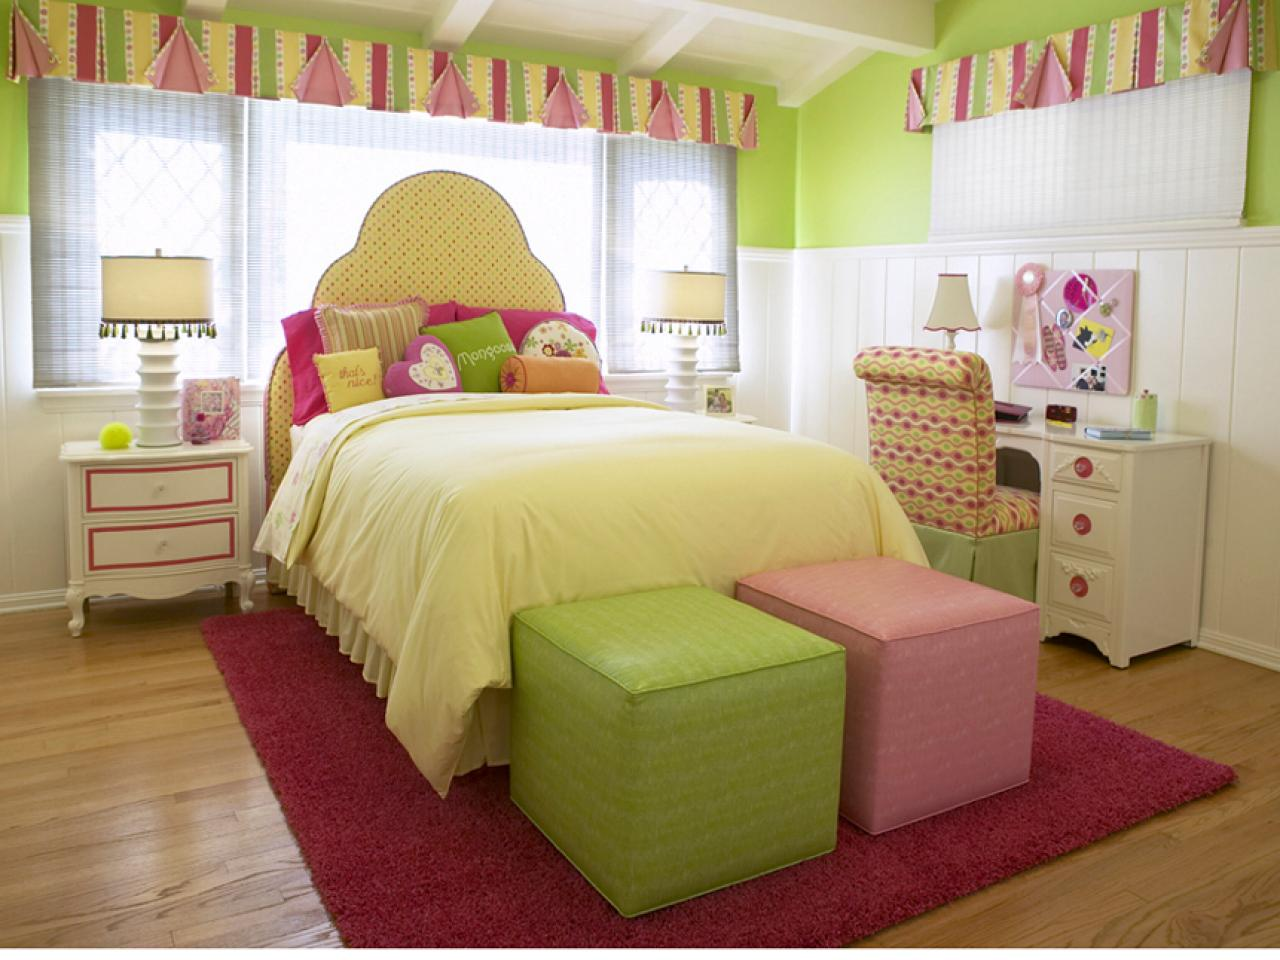 bedroom decorating ideas with furniture for 11 years old